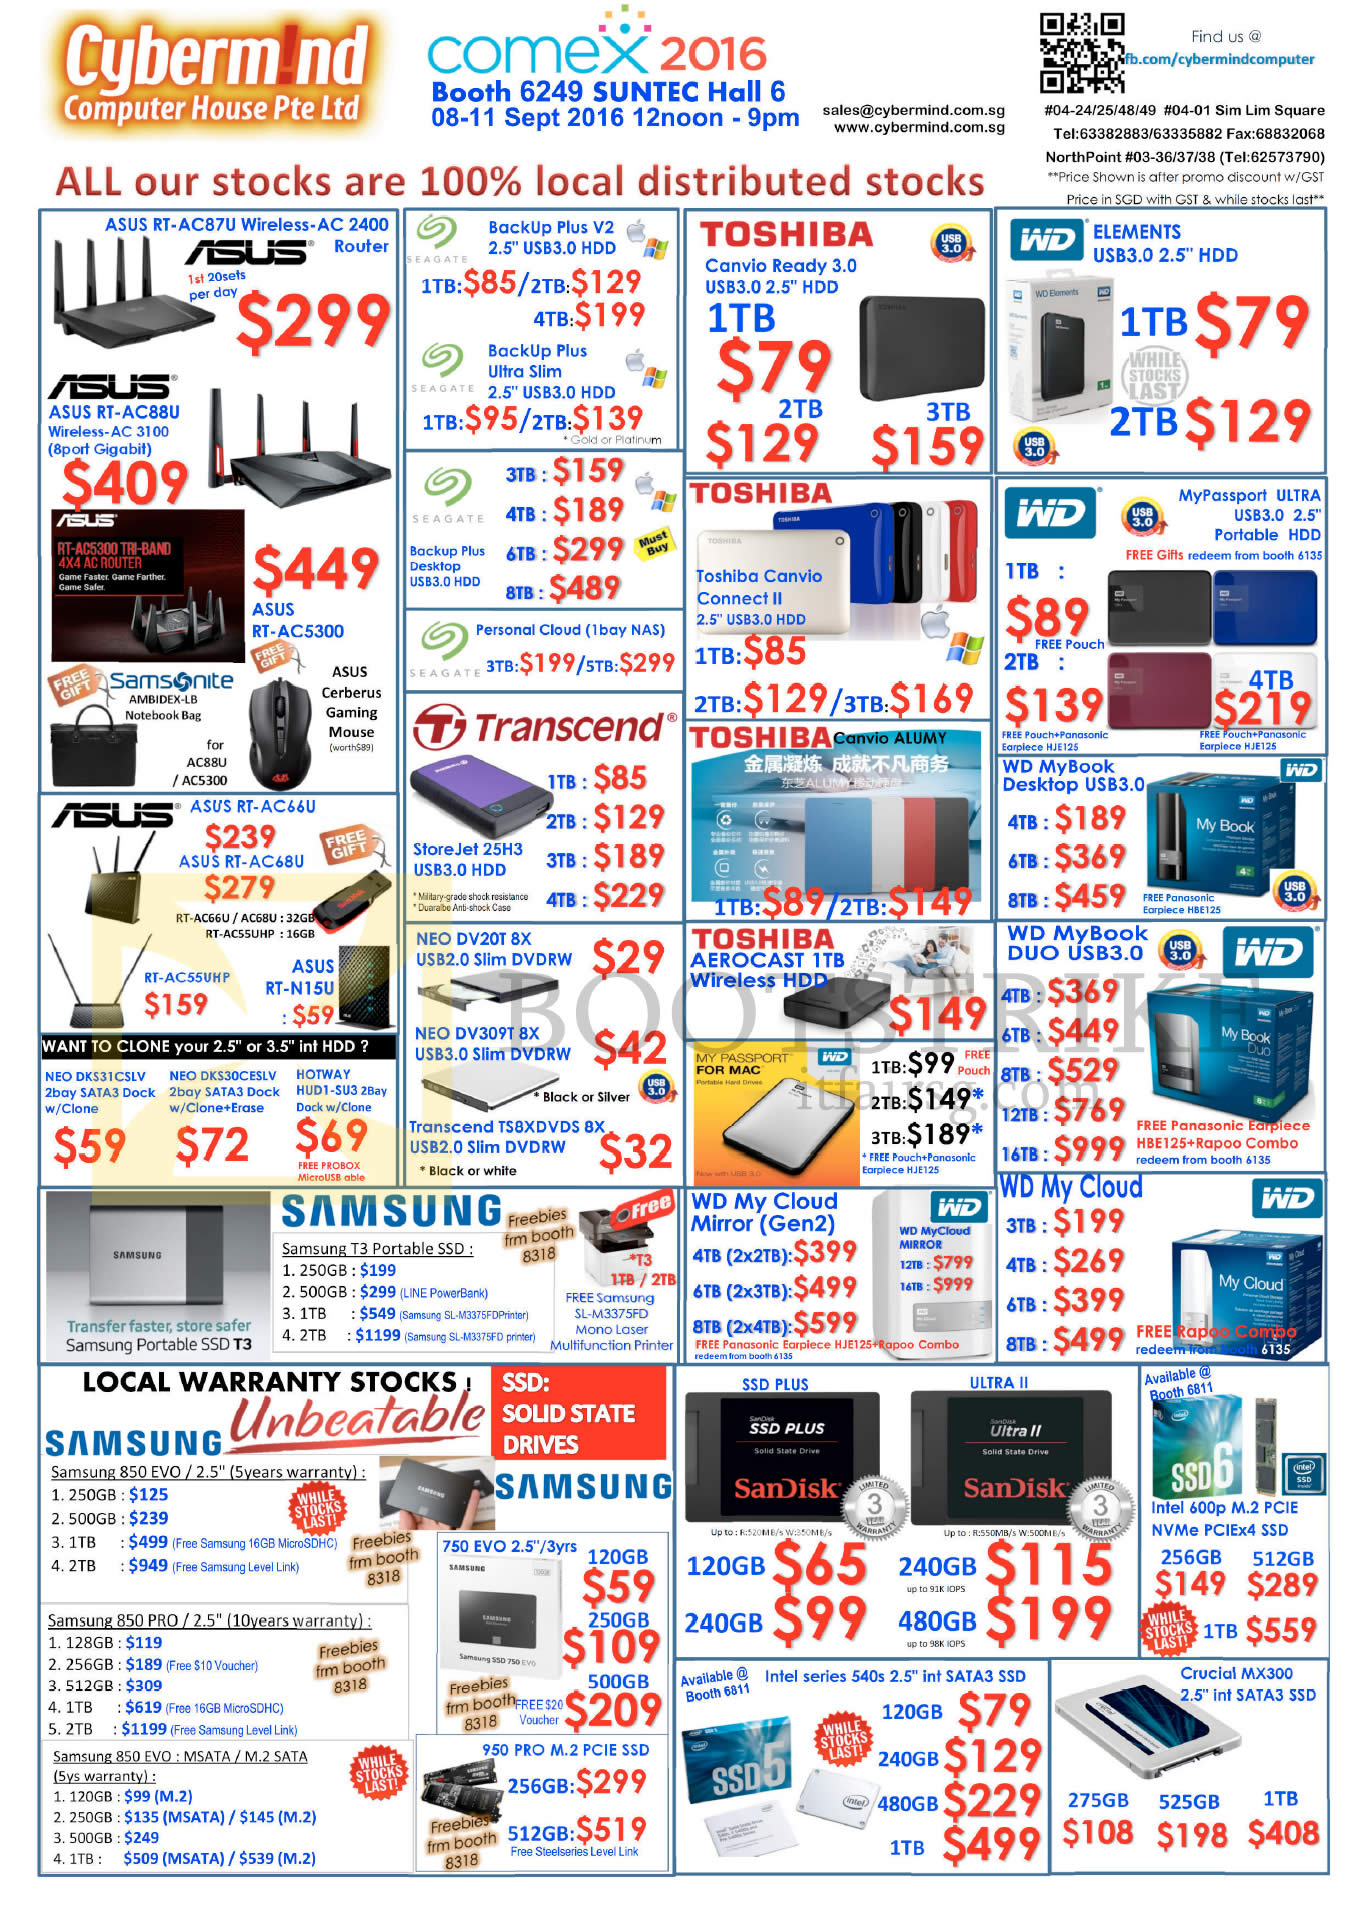 COMEX 2016 price list image brochure of Cybermind Accessories Router, Mouse, Hard Disk Drive, External HDD, Samsung, Asus, Toshiba, WD, Western Digital, Transcend, SanDisk